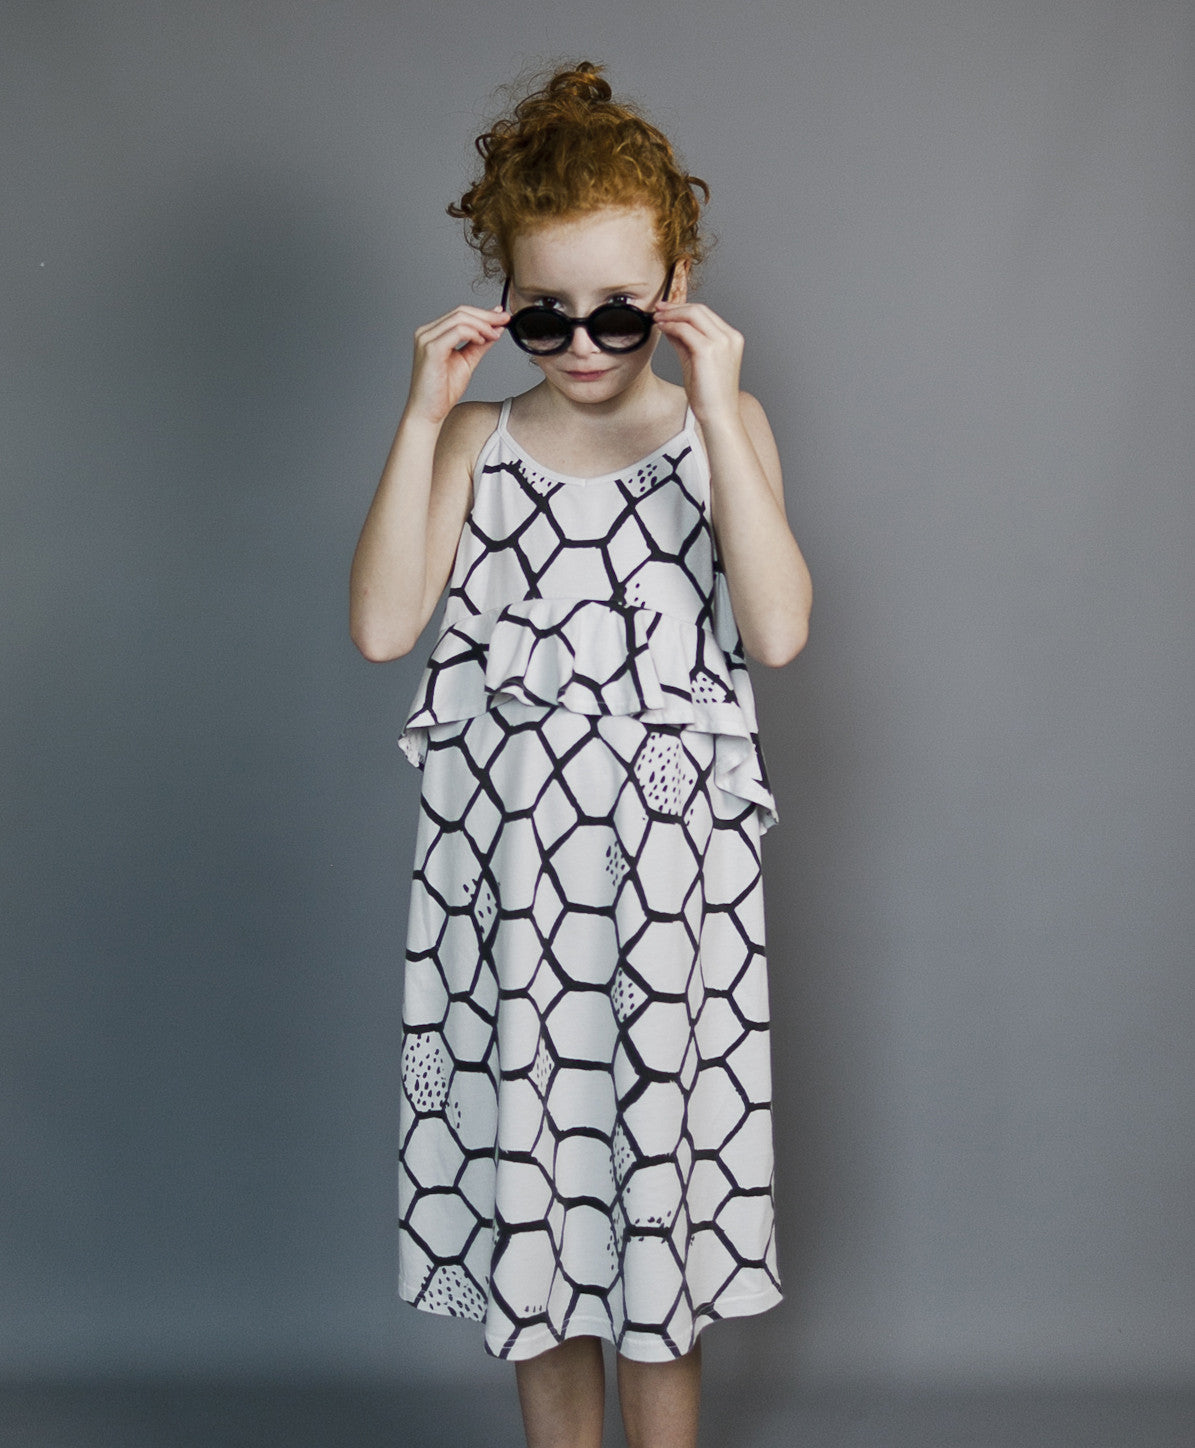 Beau Loves | Love Net Squint Dress | The Mini Life